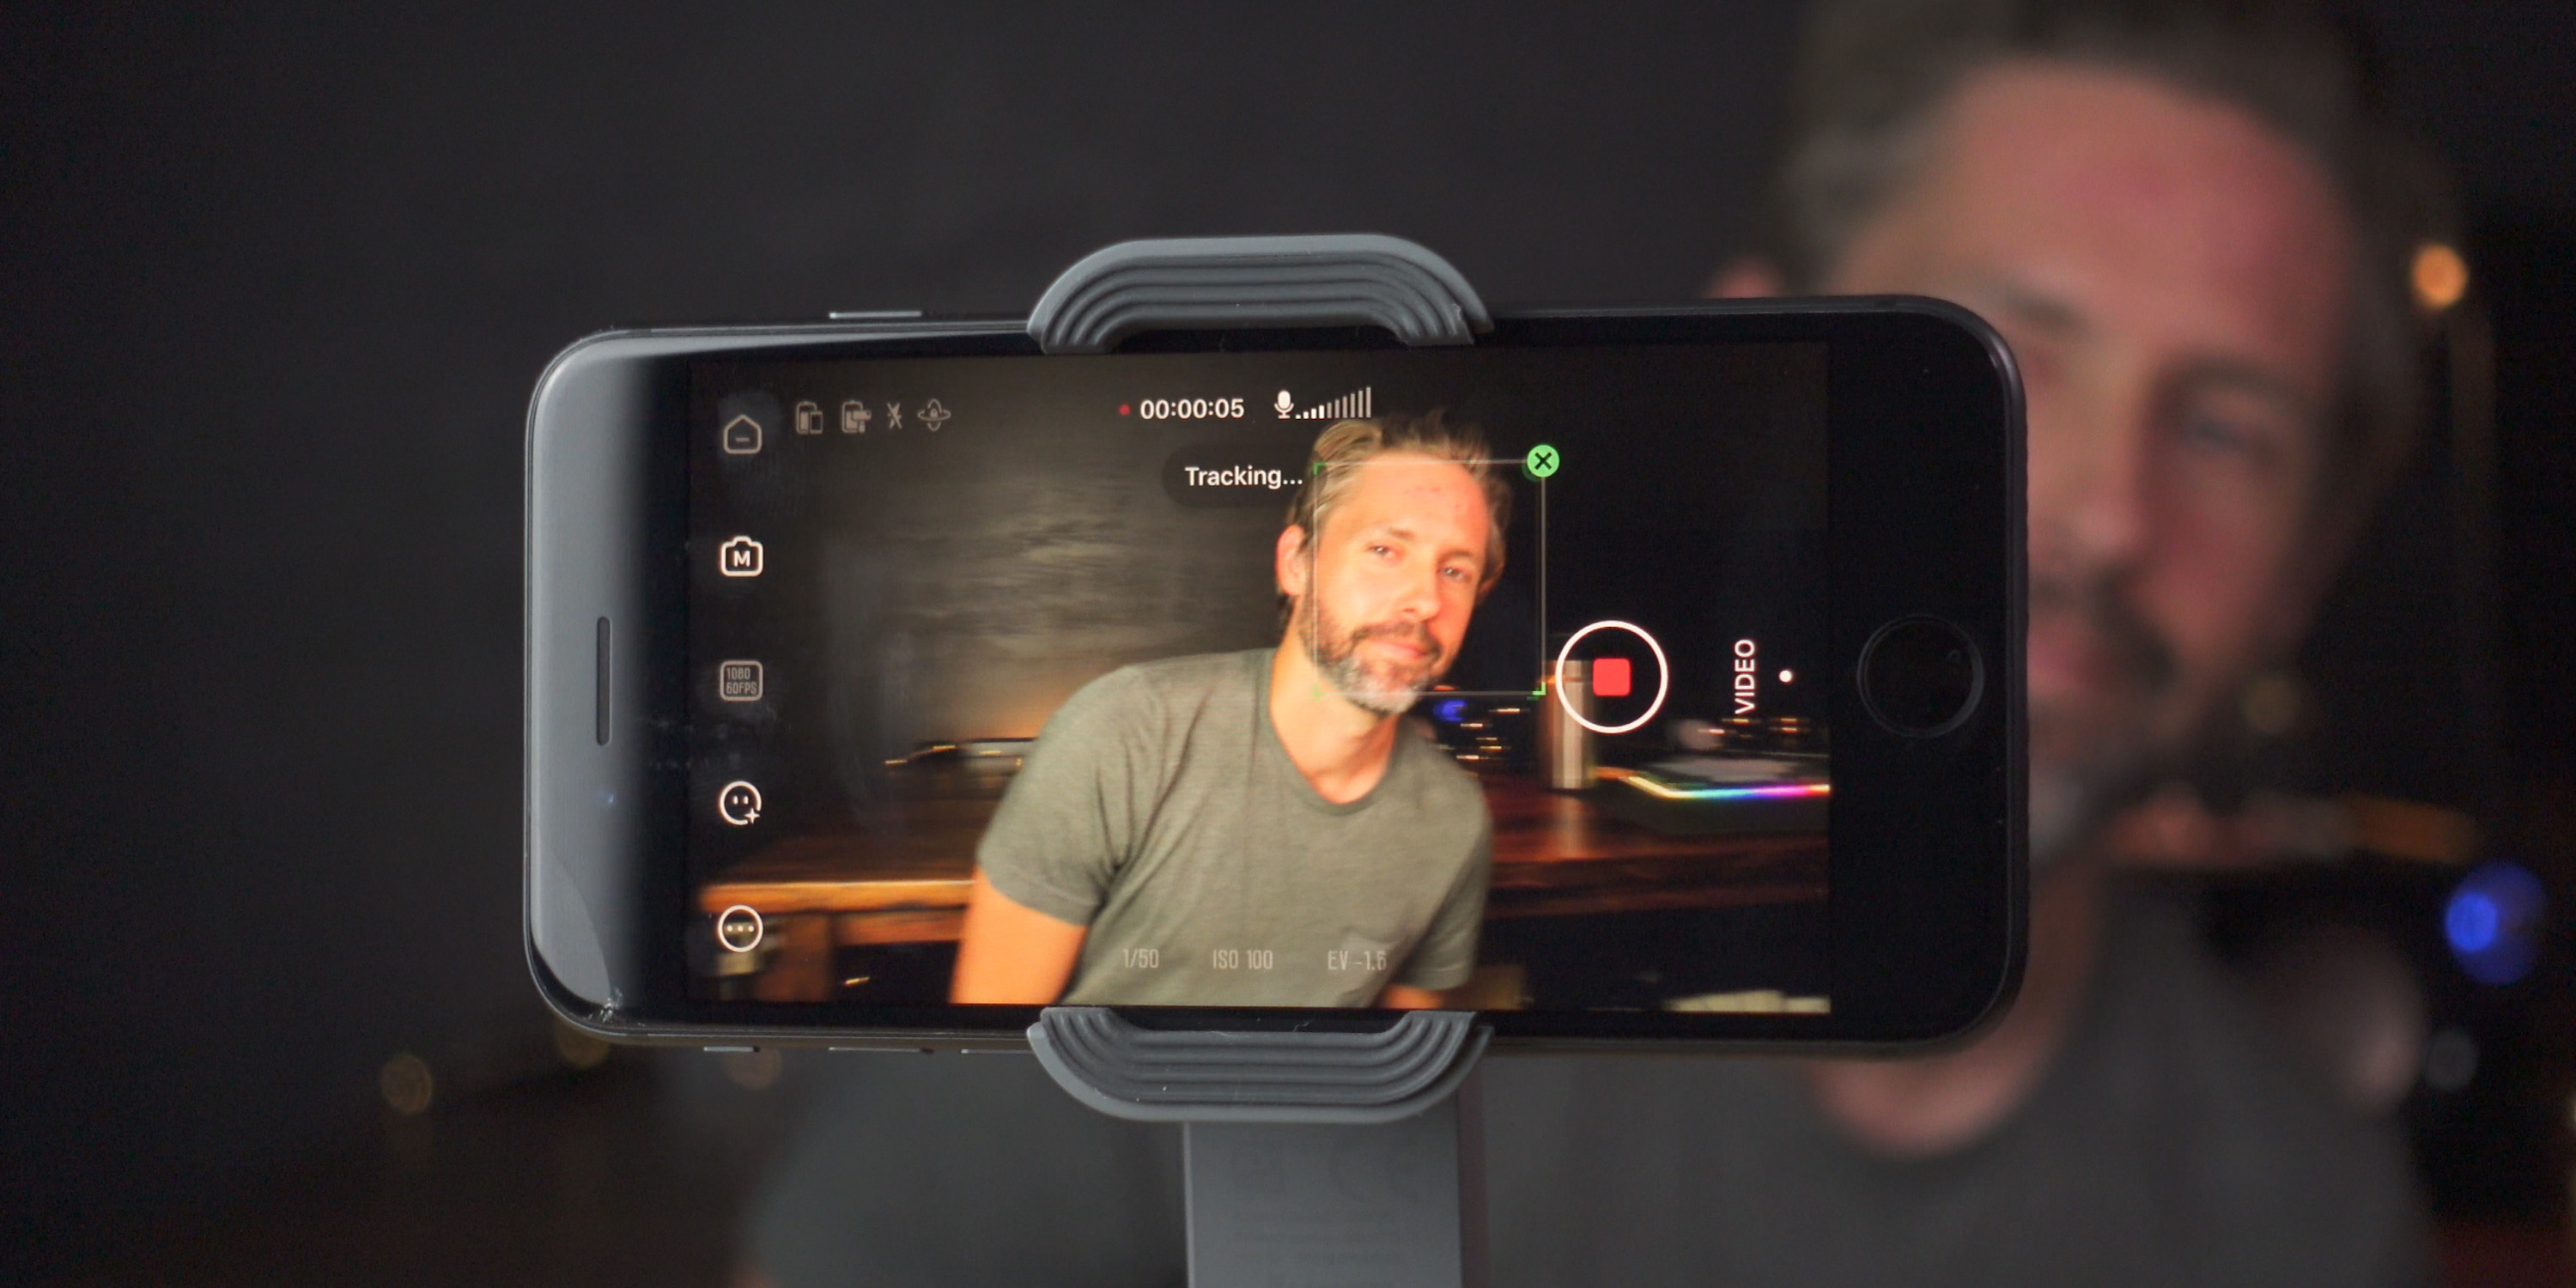 Gesture tracking from the ZY Cami app and Smooth-X Gimbal